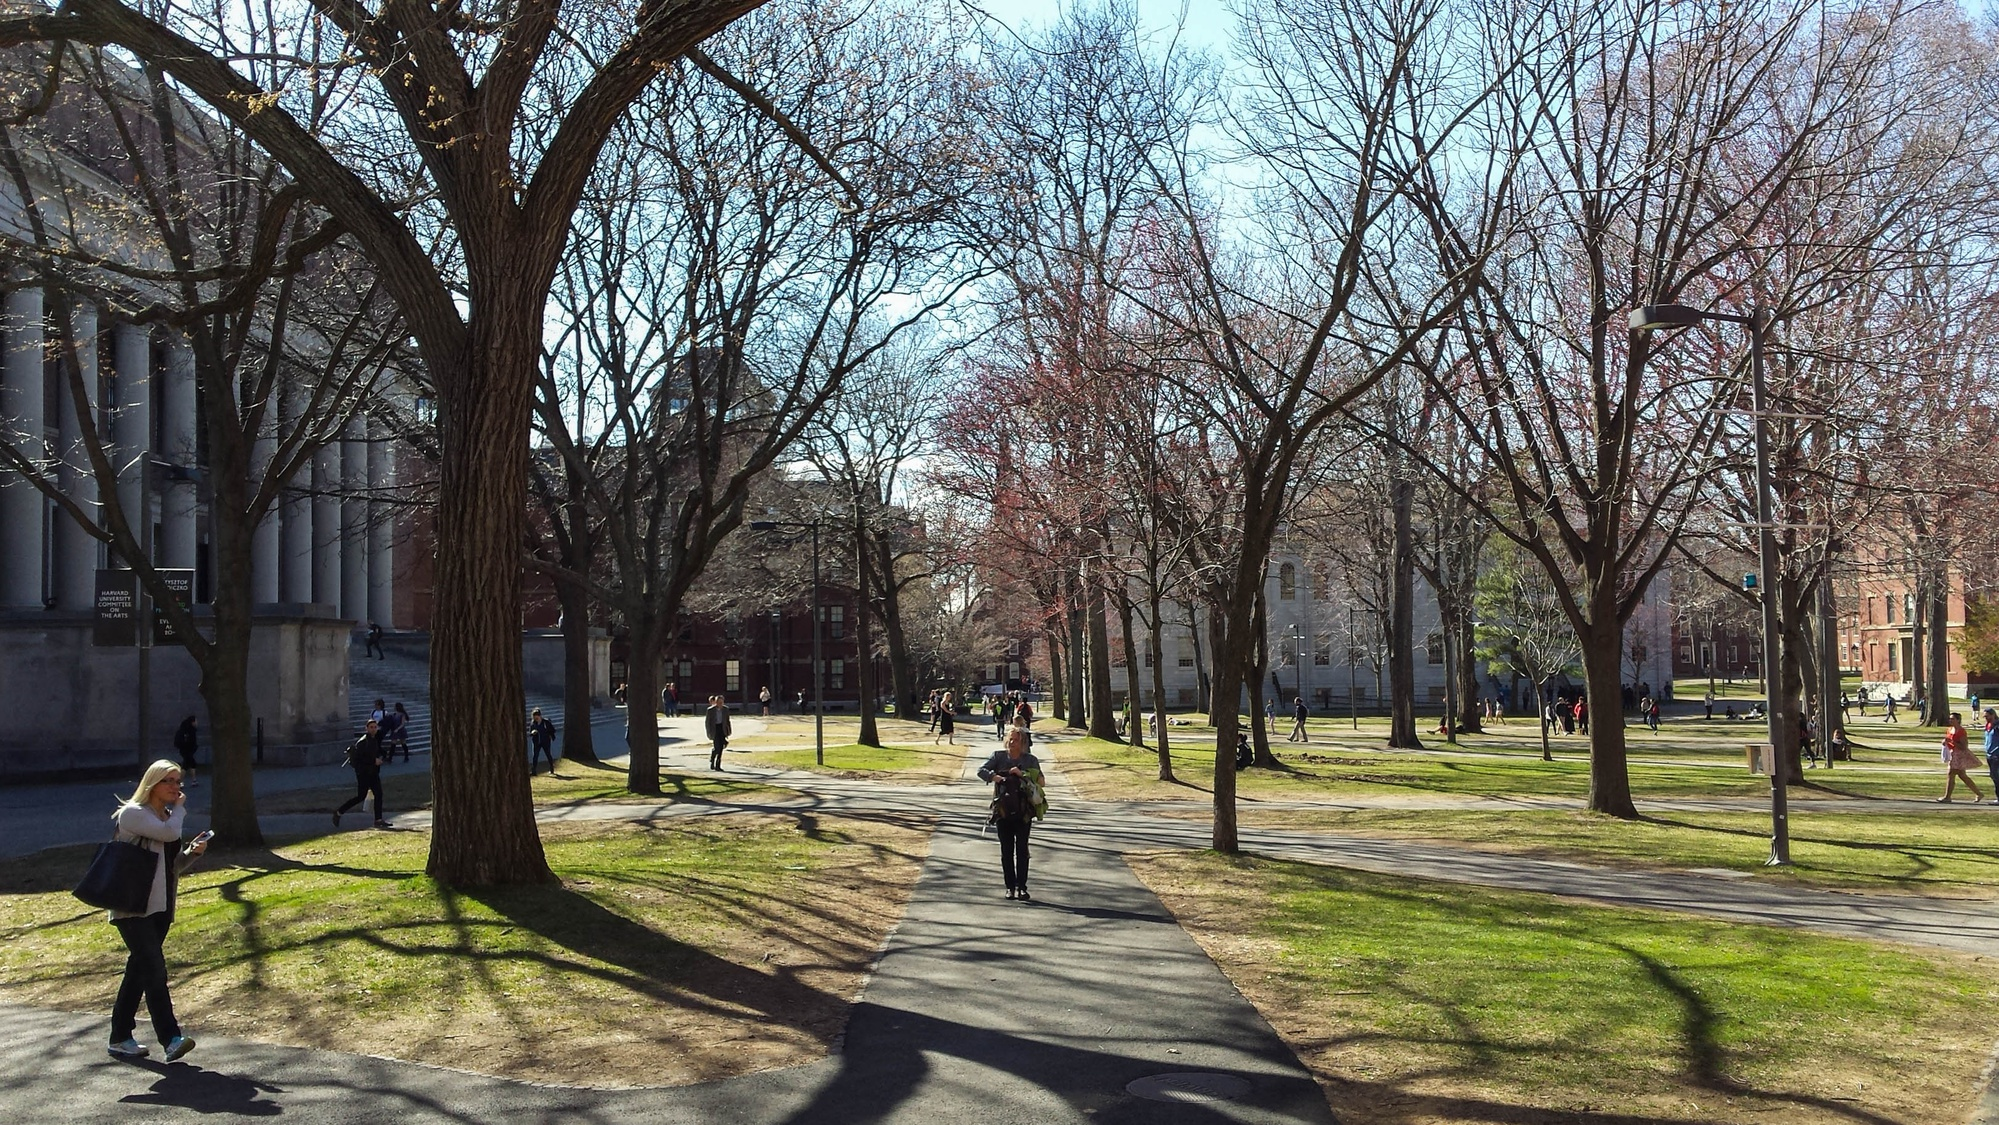 Shadows of trees spread across Tercentenary Theater as students and visitors walk through the yard on a warm Wednesday.